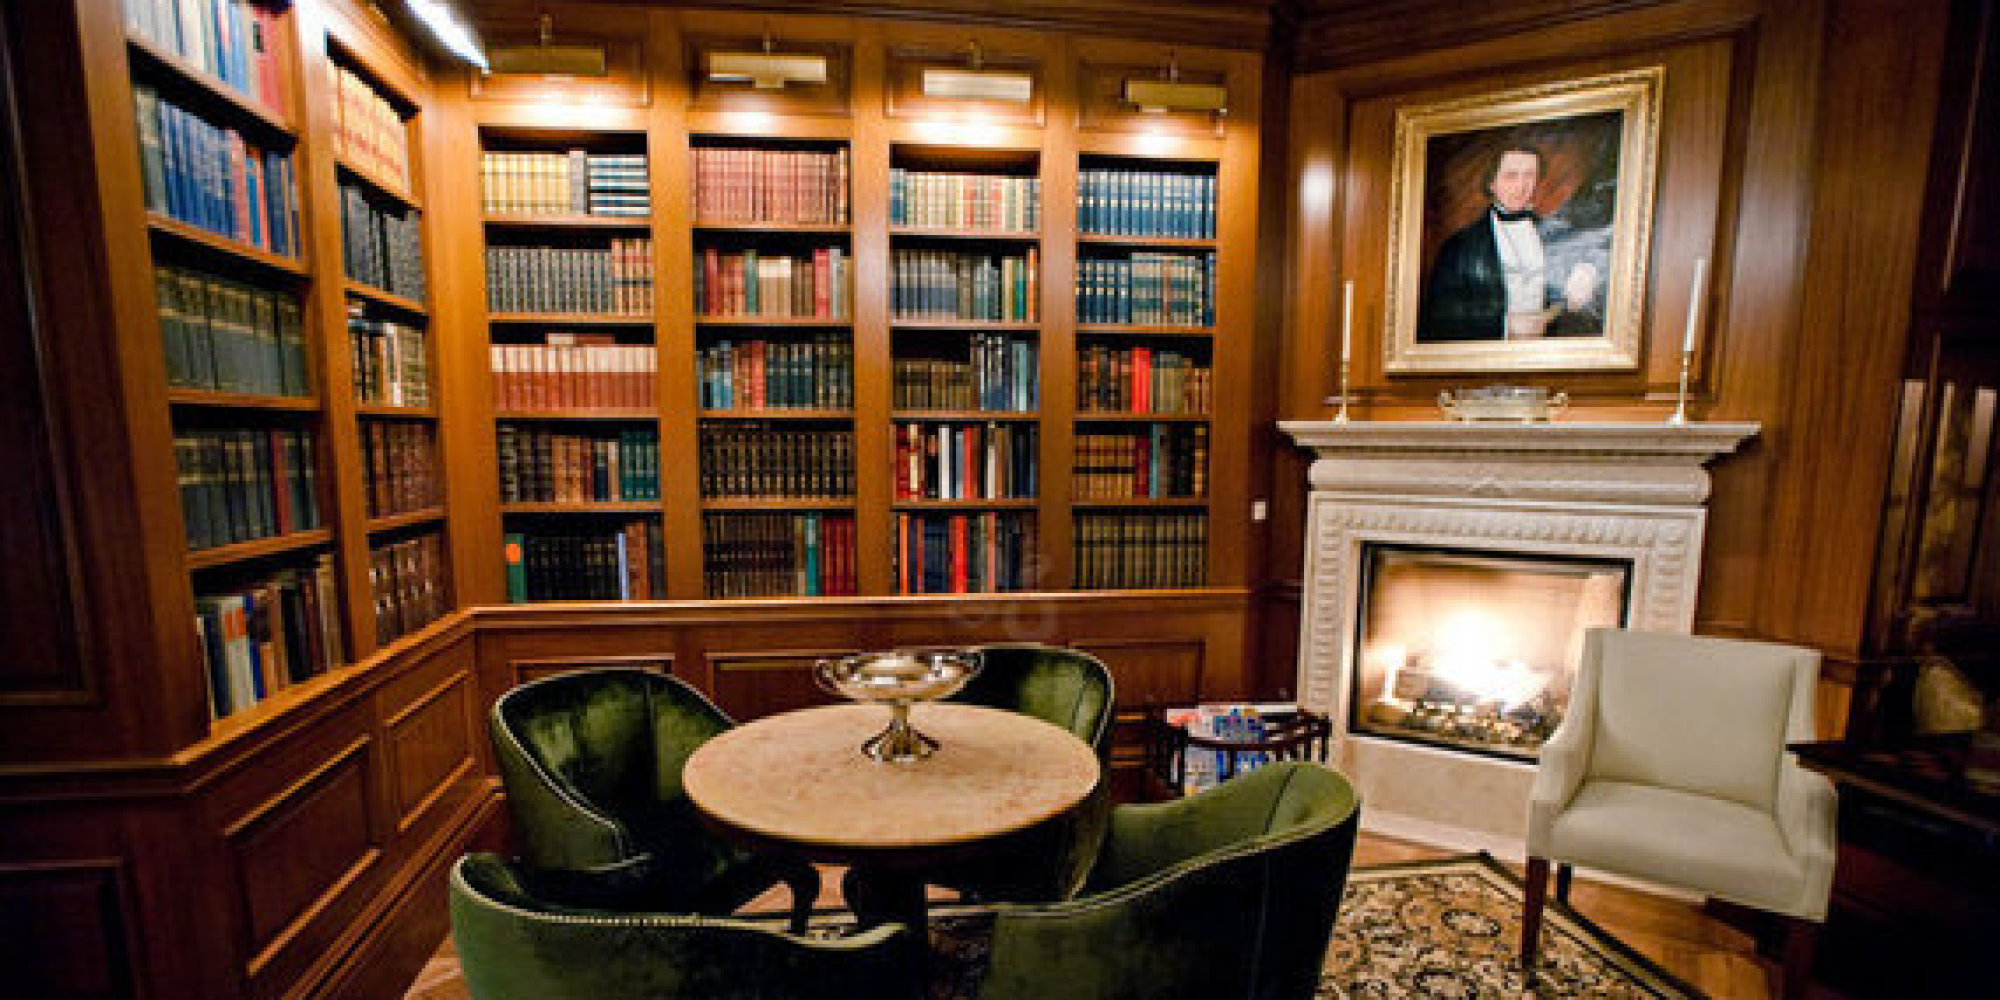 Remarkable Beautiful Libraries The Top 10 Hotel Libraries In The World The Largest Home Design Picture Inspirations Pitcheantrous